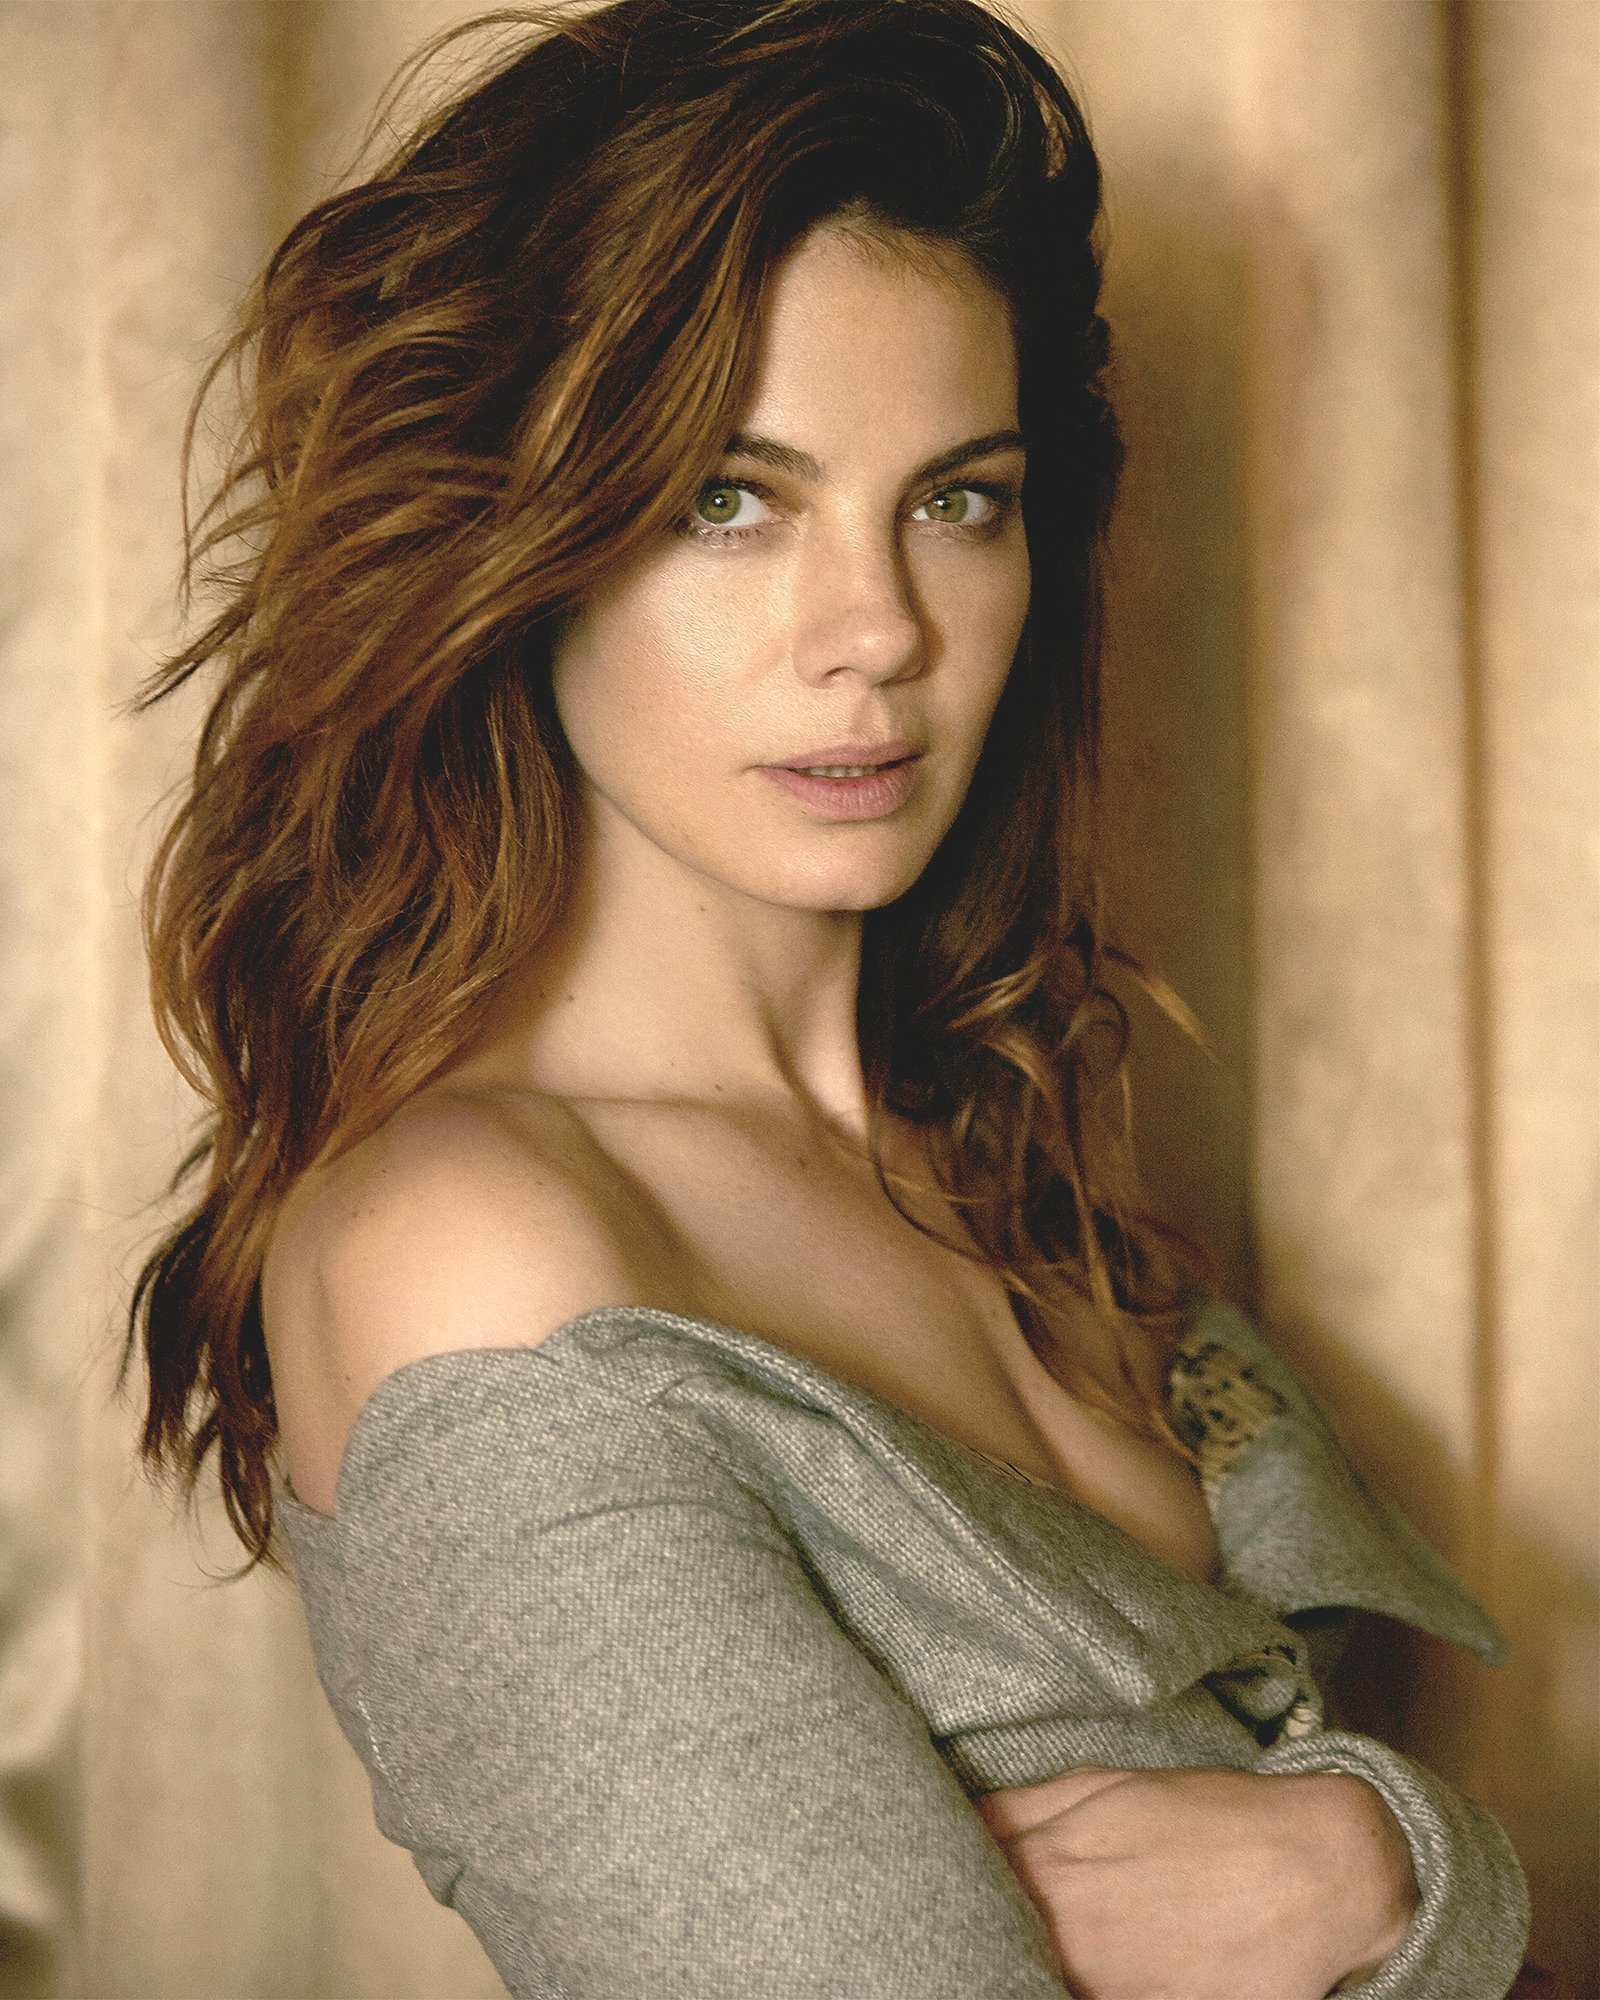 Top 100 Hottest Hollywood Actresses as per IMDb » Page 20